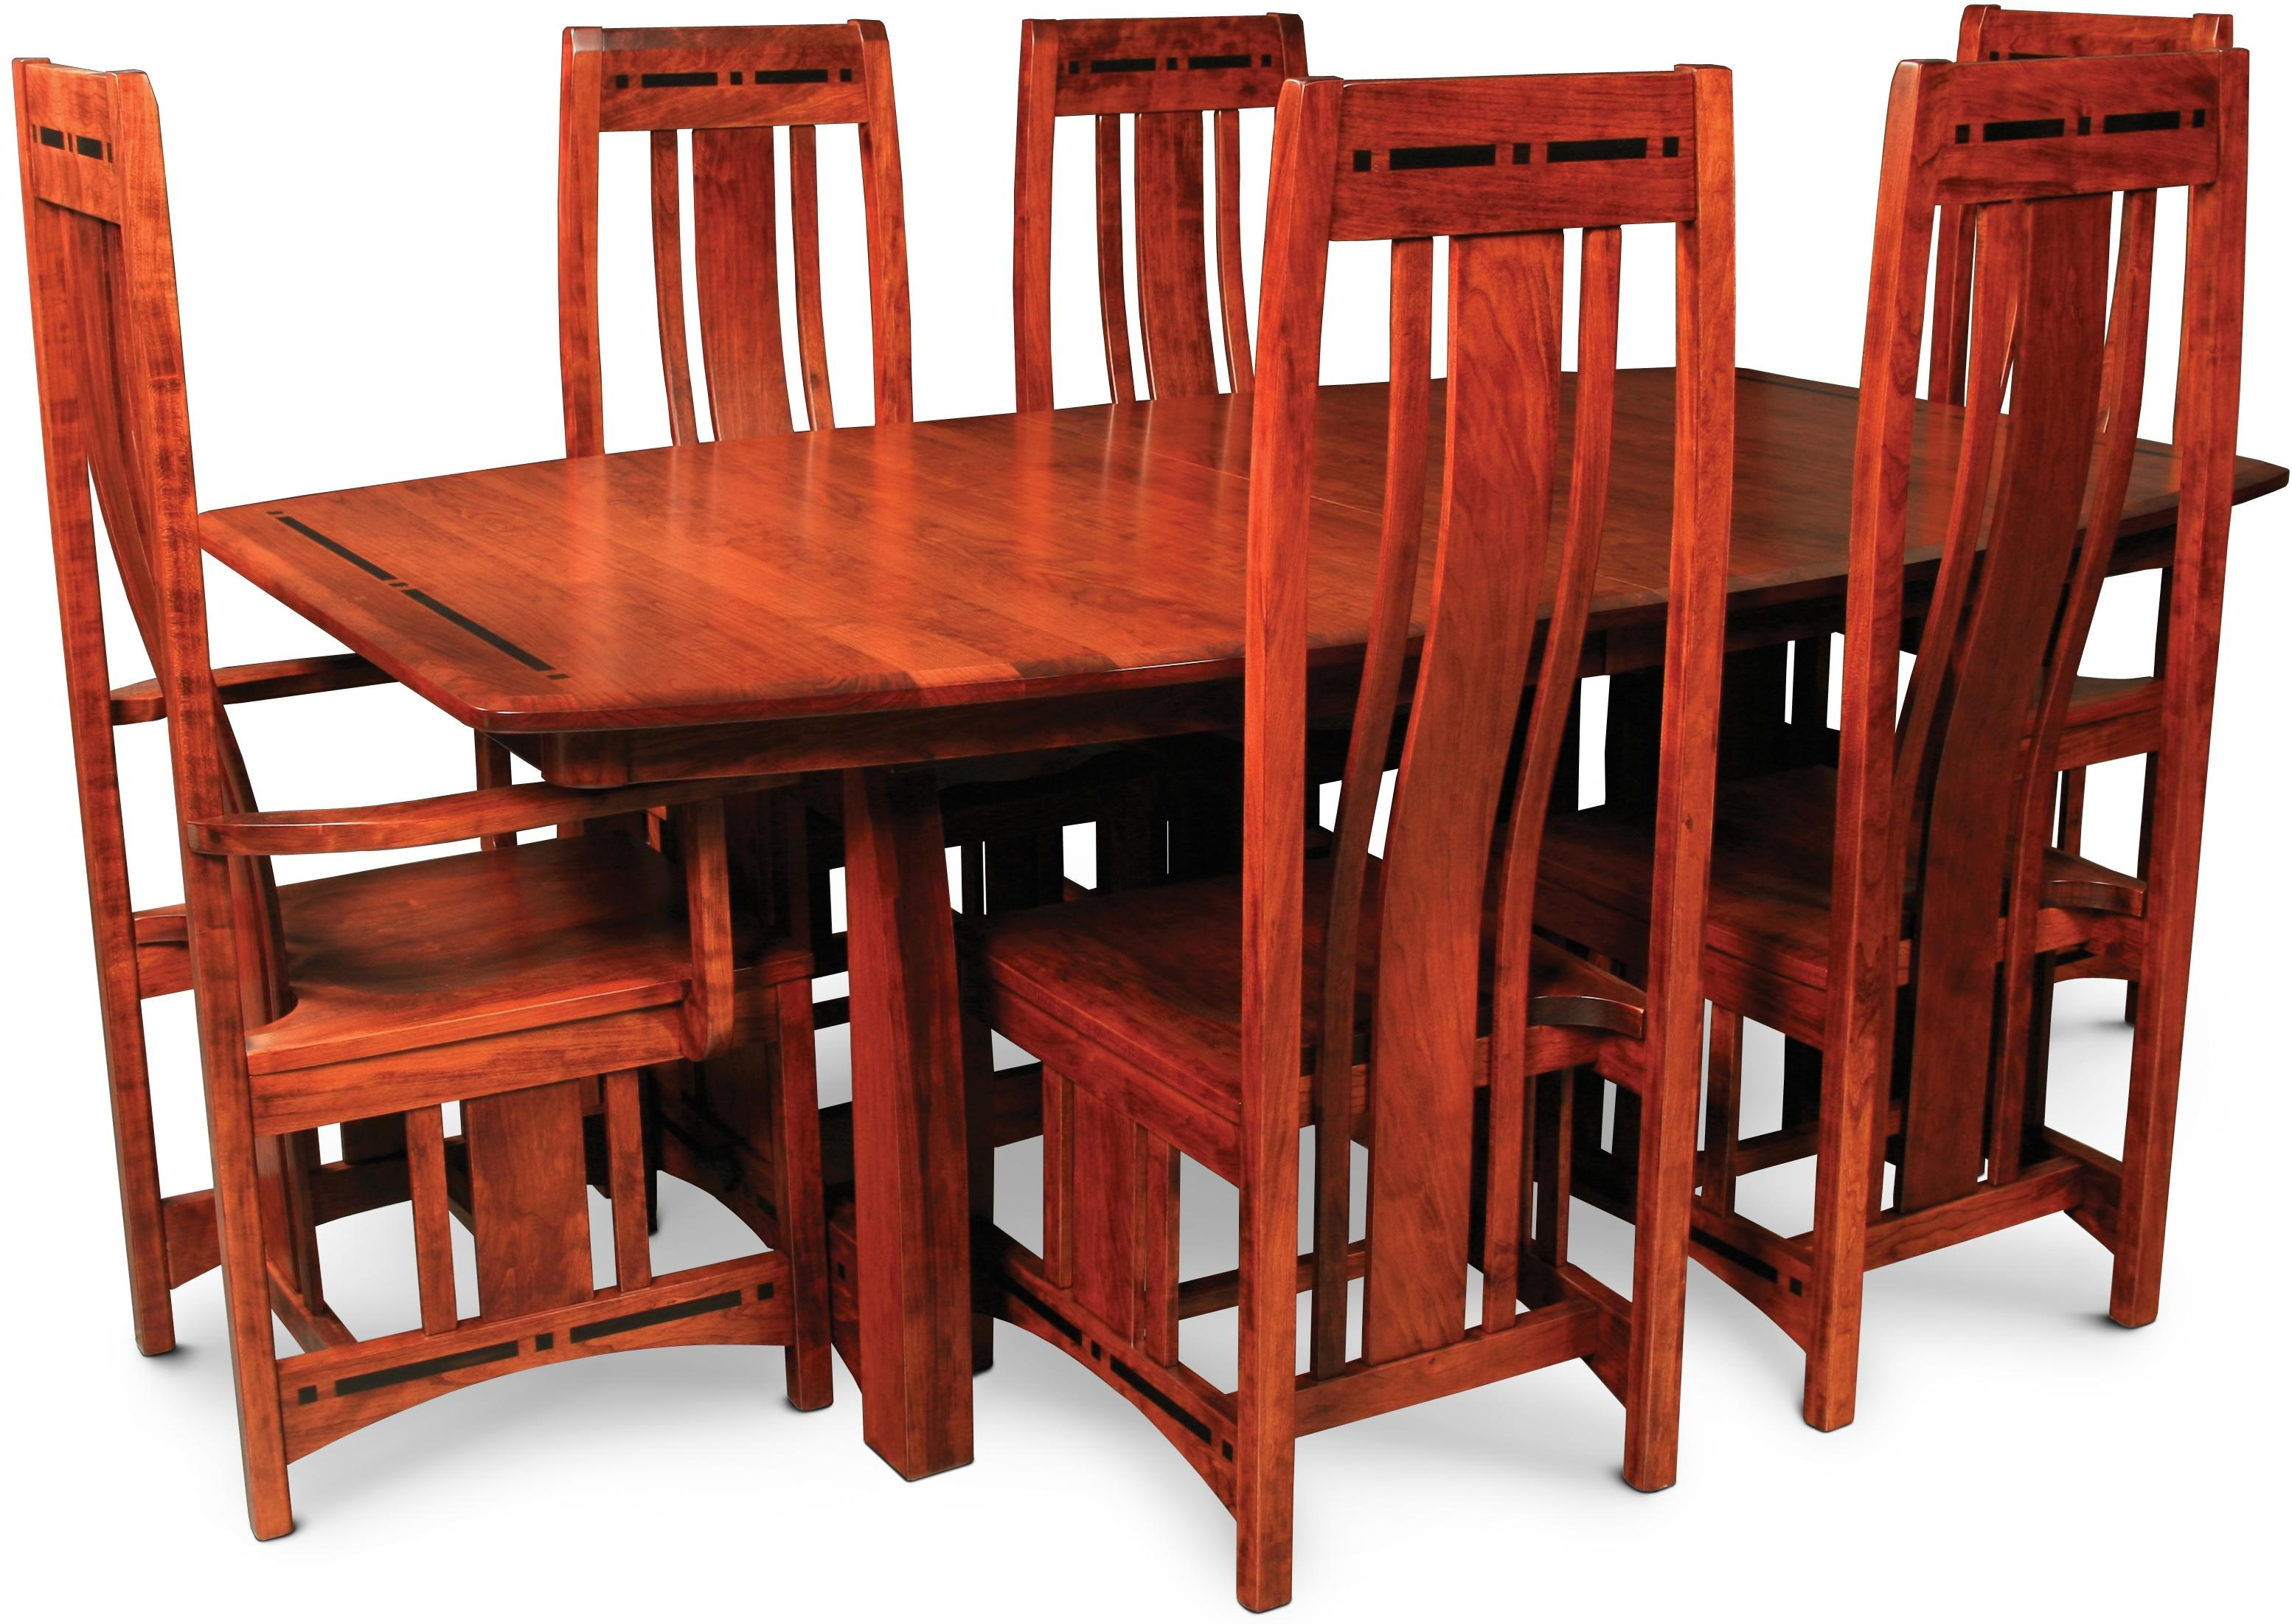 Simply Amish Aspen7 Piece Dining Set ...  sc 1 st  Dunk u0026 Bright Furniture & Simply Amish Aspen 7 Piece Mission Trestle Table and Chair Set ...